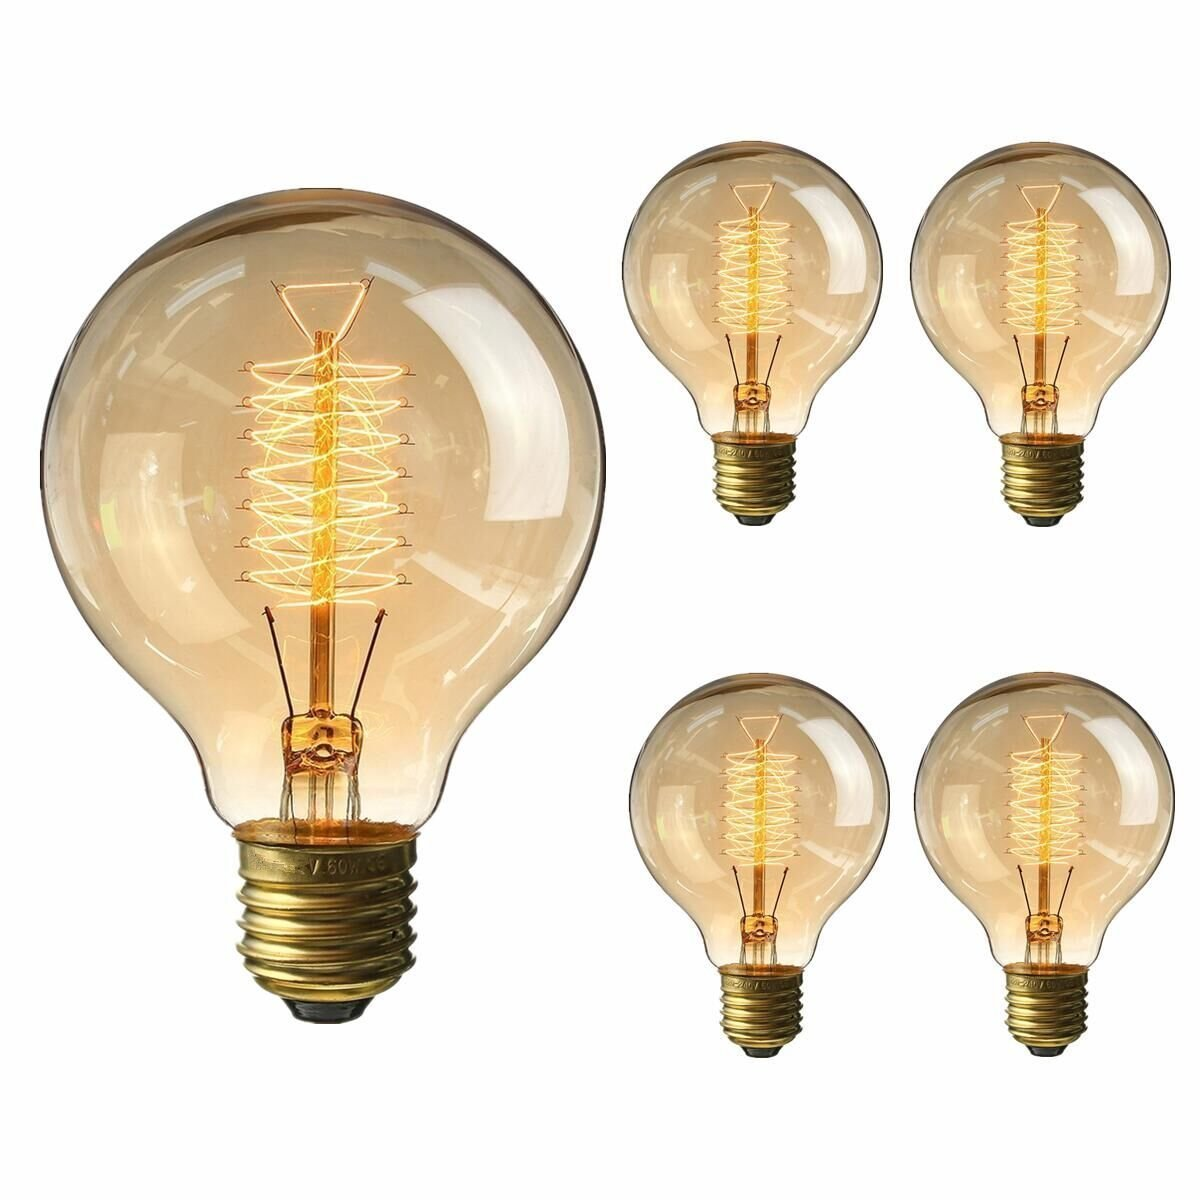 KINGSO Vintage Edison Bulb 60W Incandescent Antique Dimmable Light Bulb Squirrel Cage Filament E27 Base G80 110V